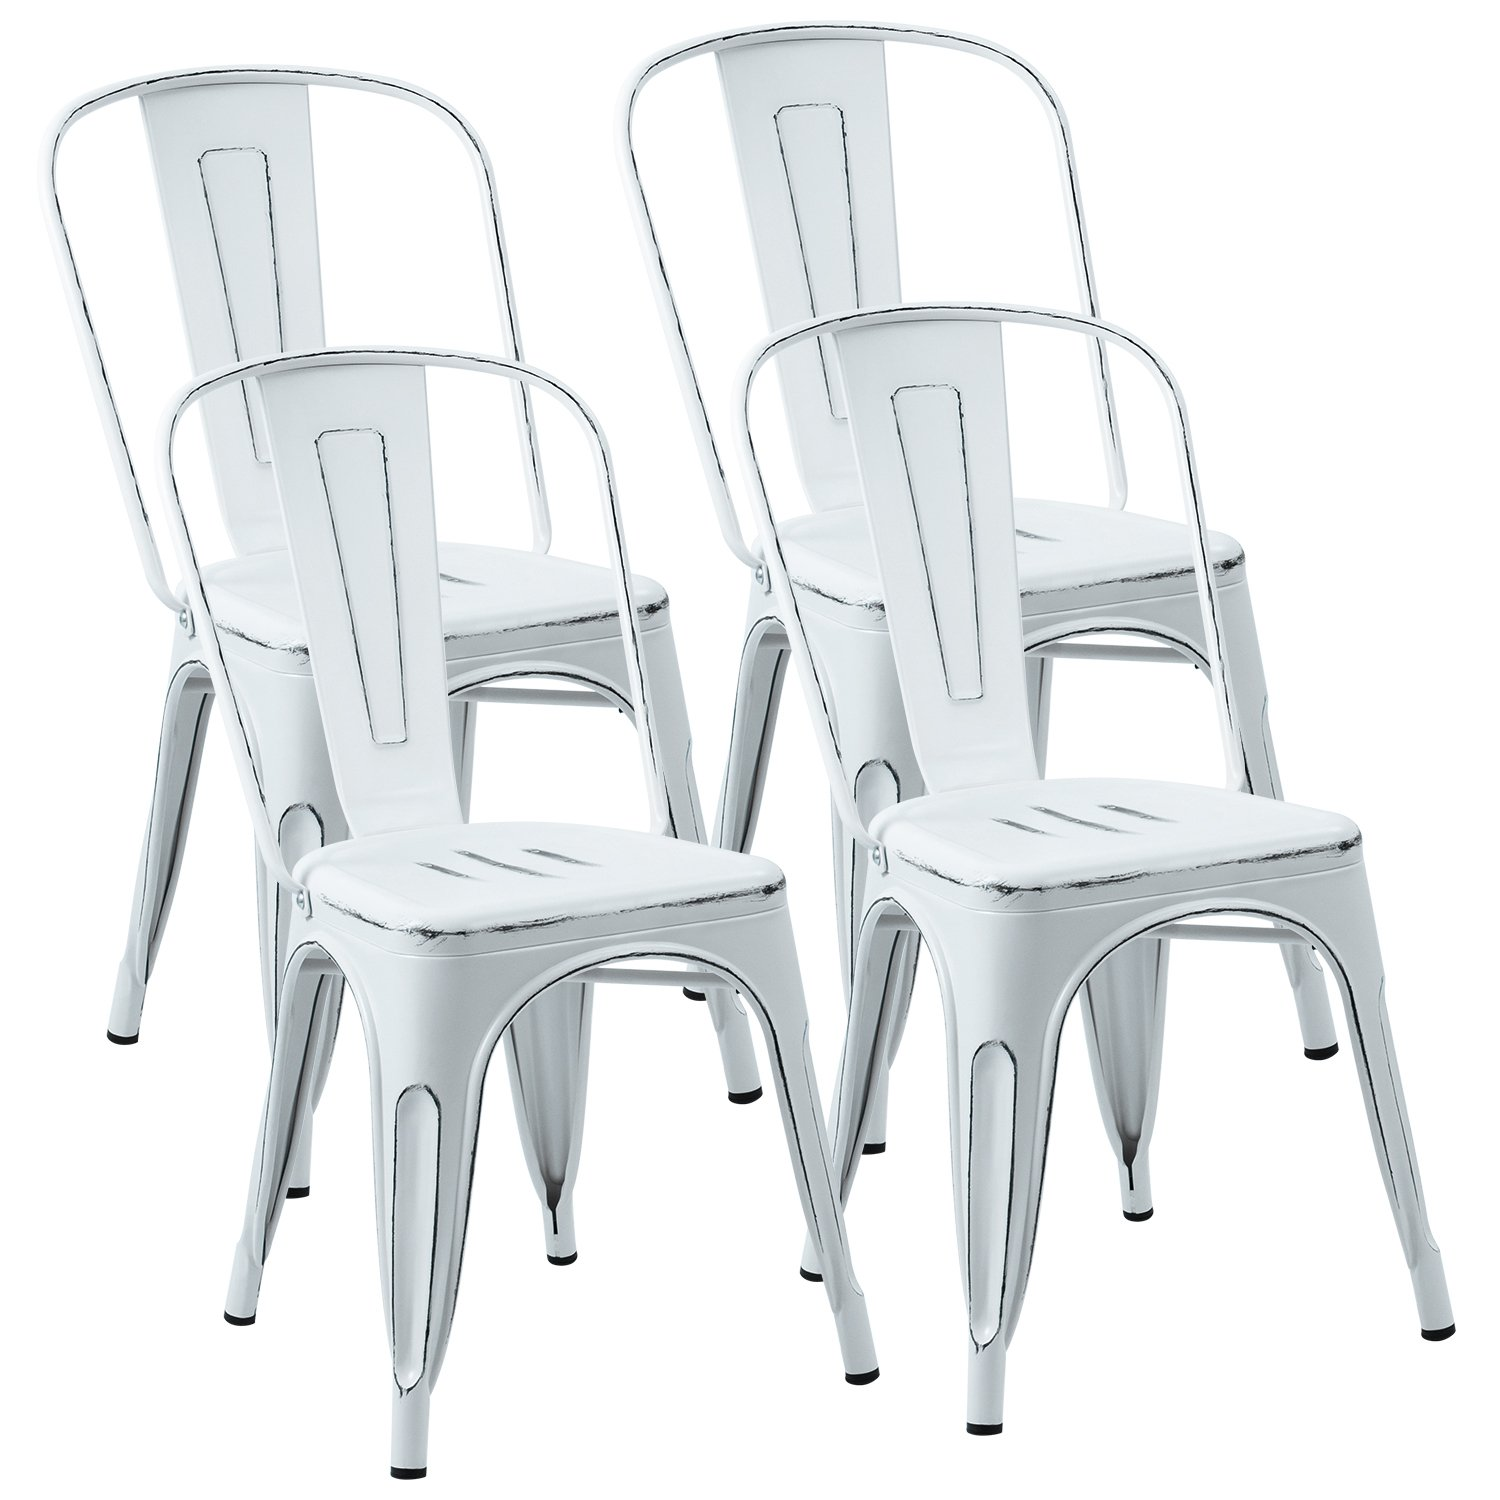 JUMMICO Metal Dining Chair Stackable Indoor-Outdoor Industrial Vintage Chairs Bistro Kitchen Side Chairs with Back Set of 4 Distressed White